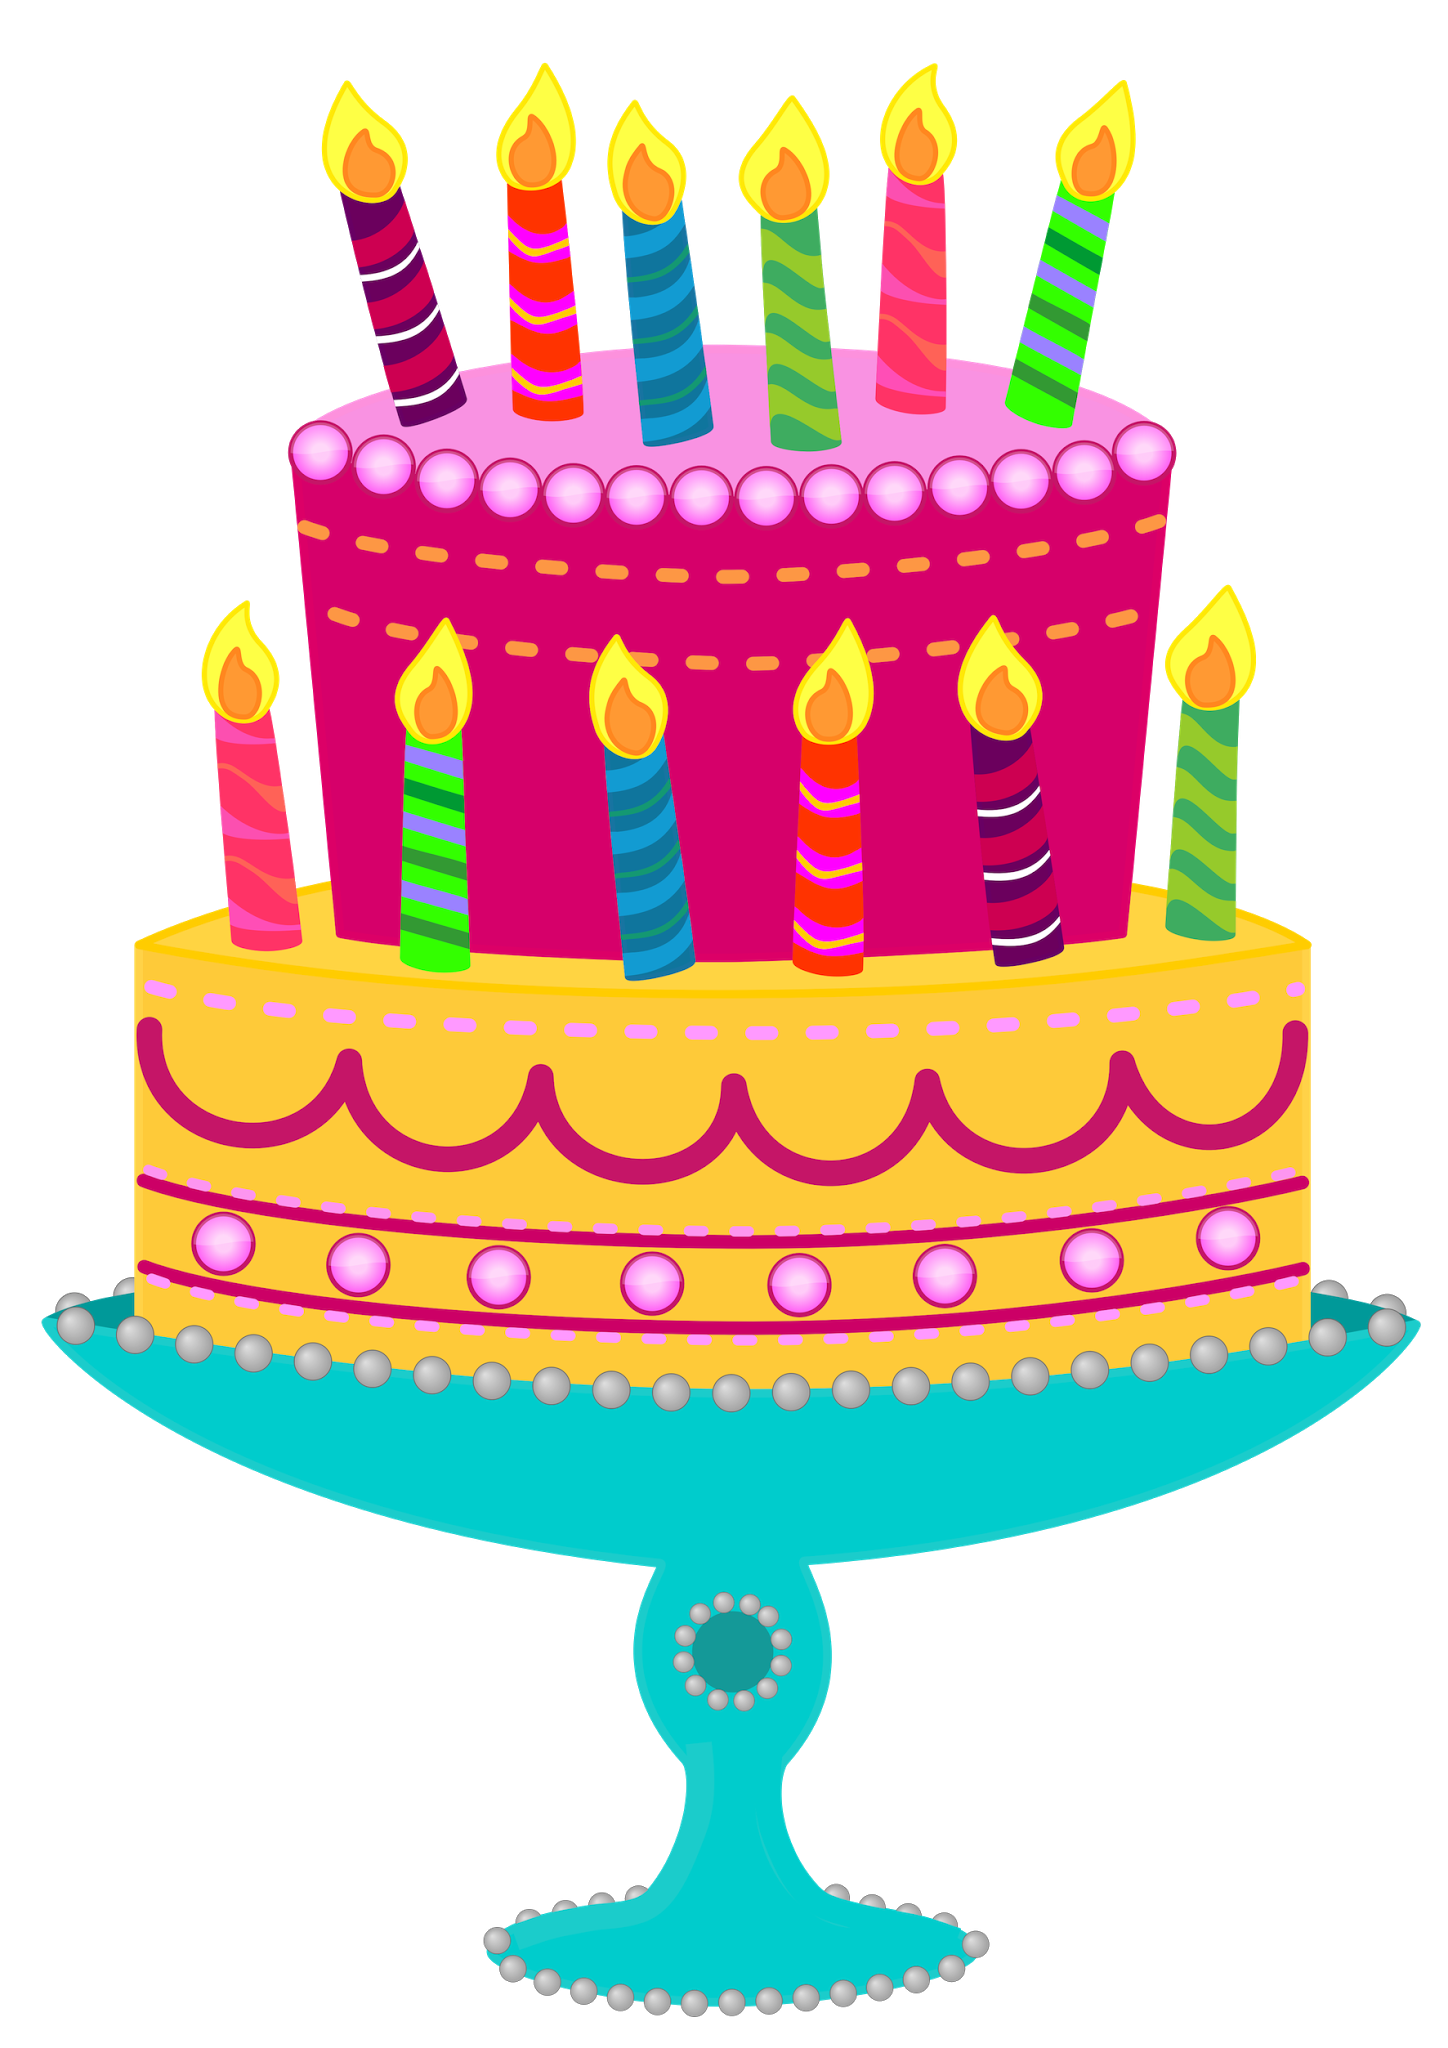 Cake Clip Art Candles : Free Cake Images - Cliparts.co Paper Images Pinterest ...